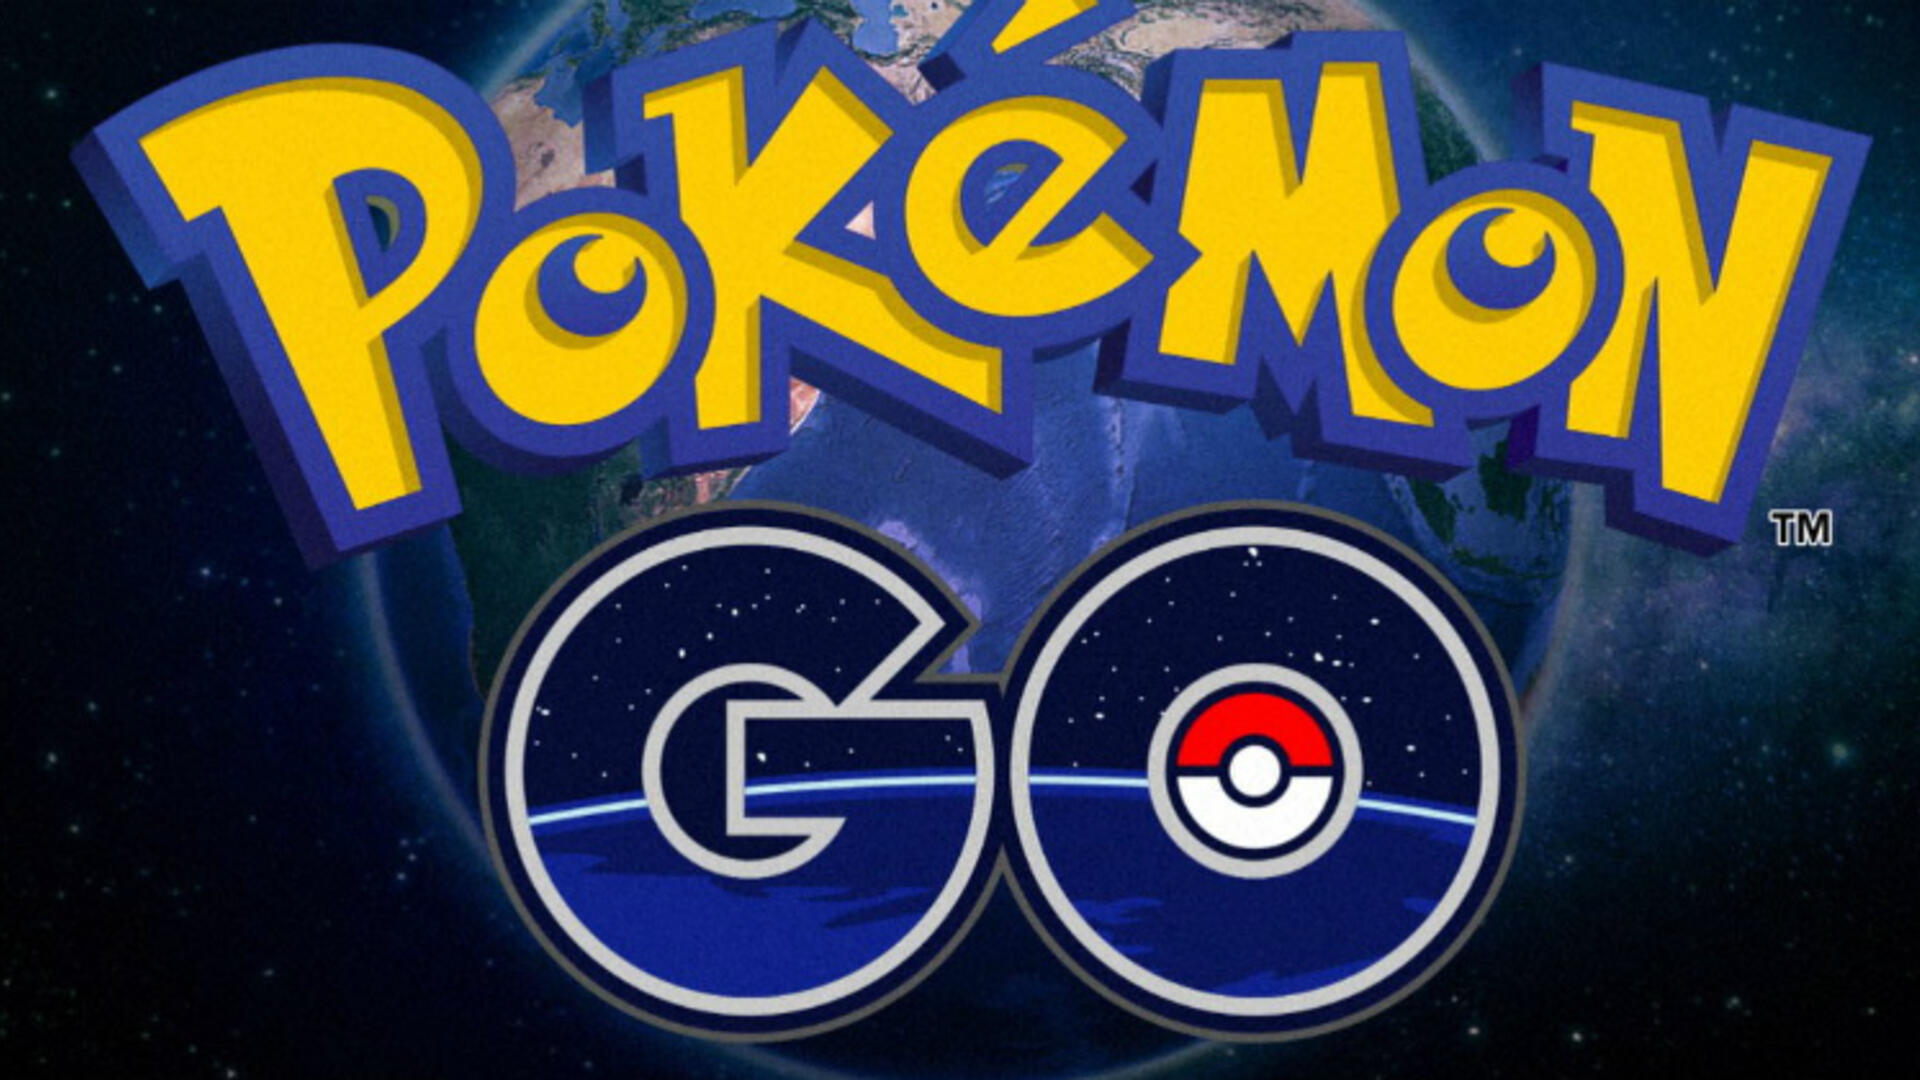 Watch Where You're Pokemon Go-ing